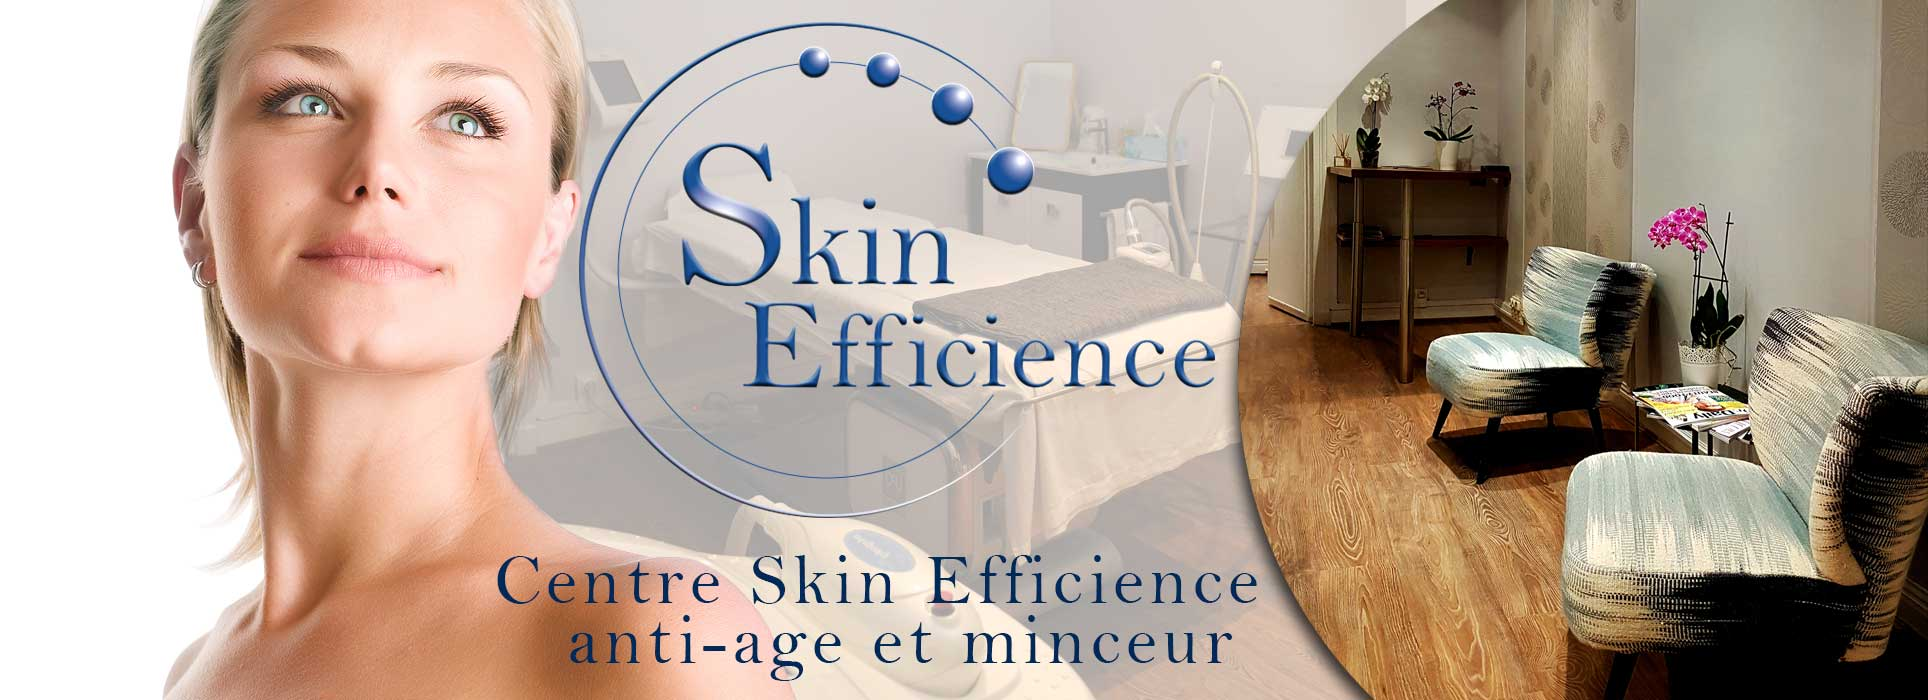 centre-skin-efficience-paris-anti-age-et-minceur